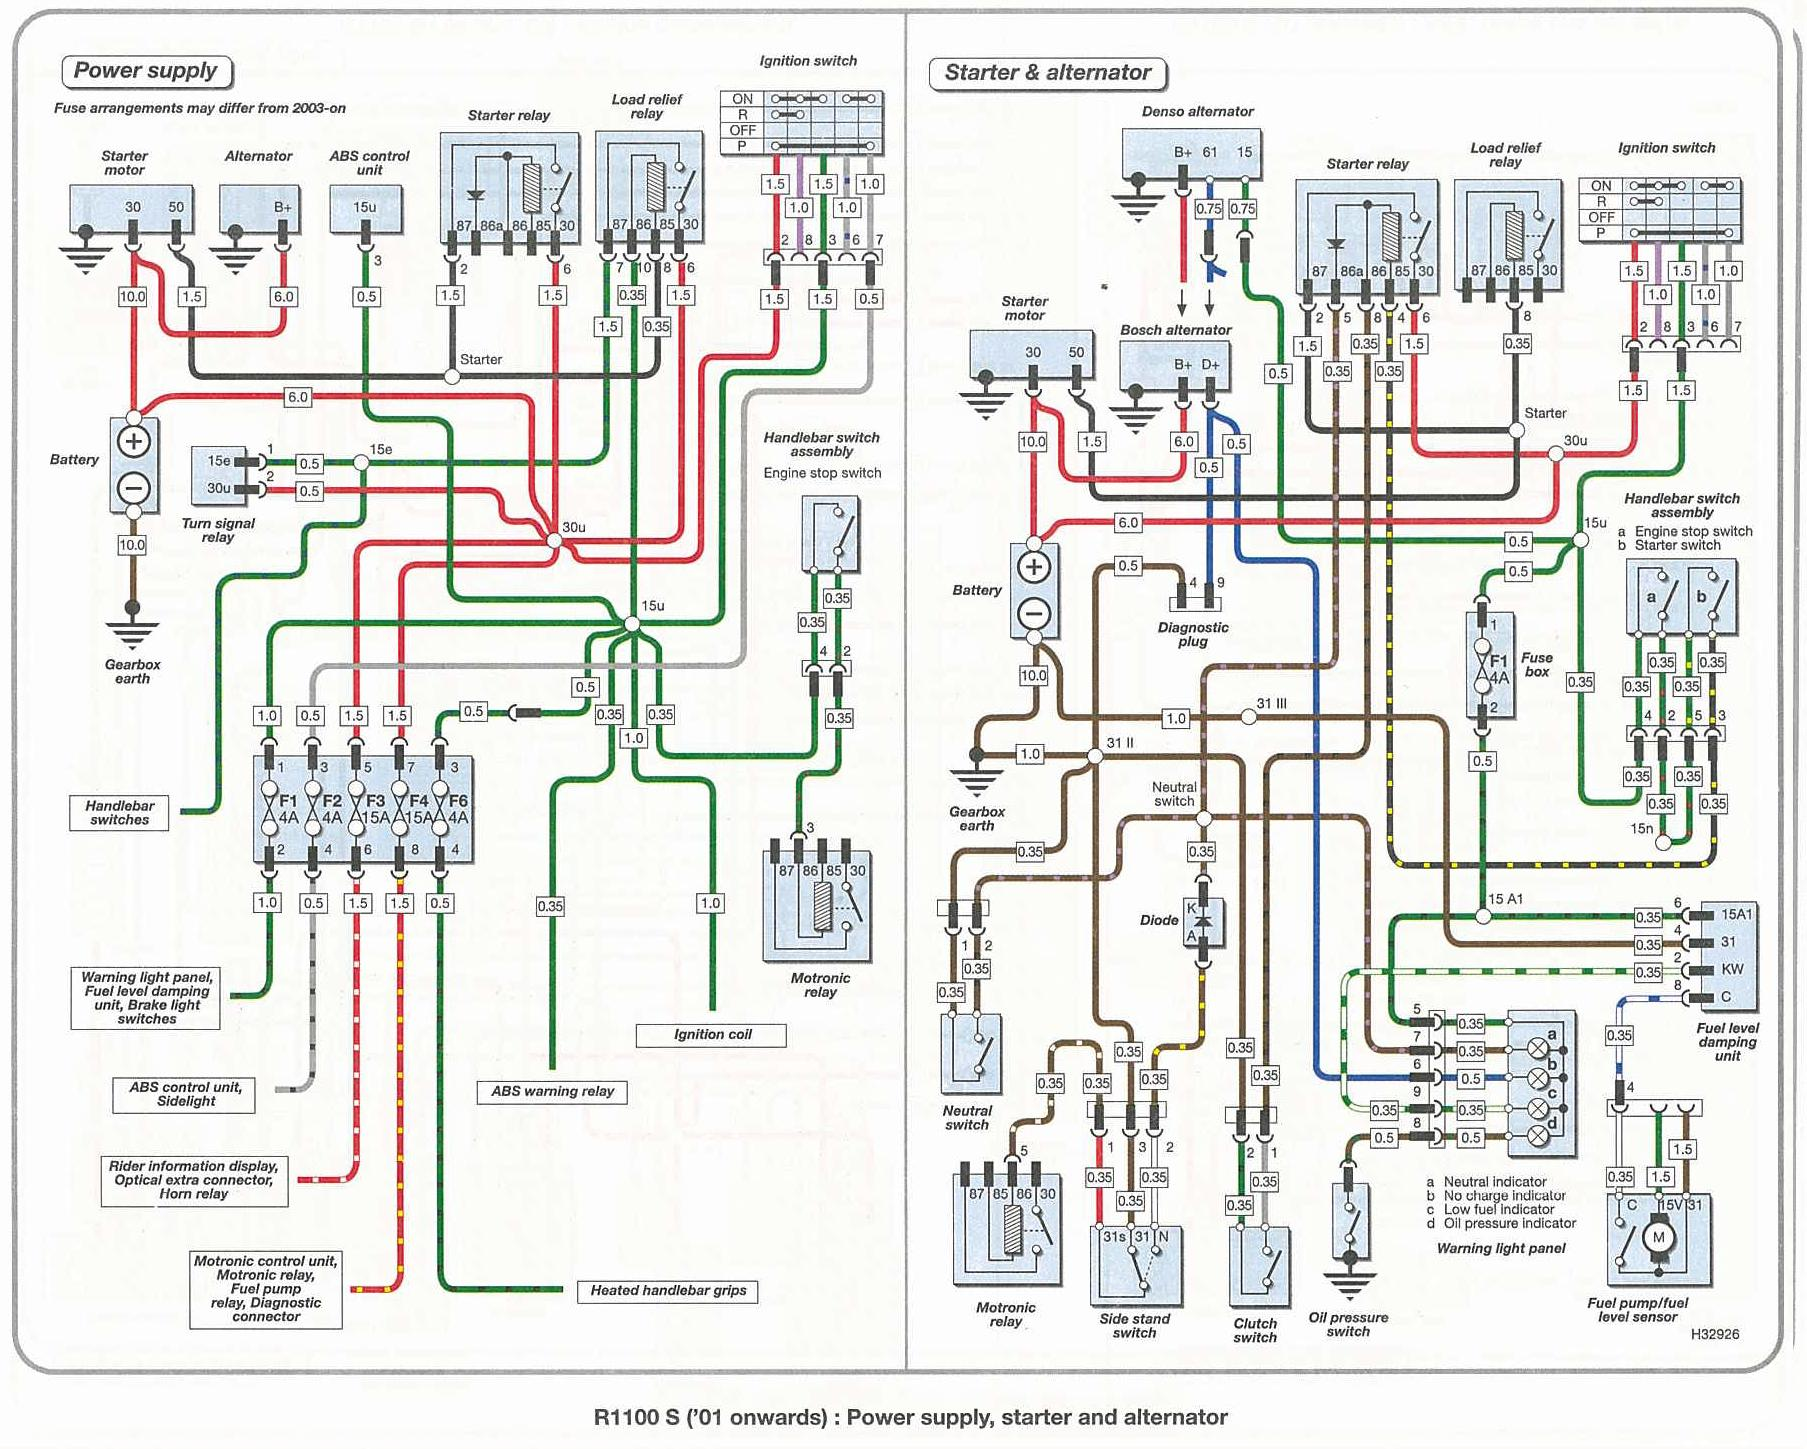 BMW R1100S Wiring Diagrams – K1300s Wiring Diagram